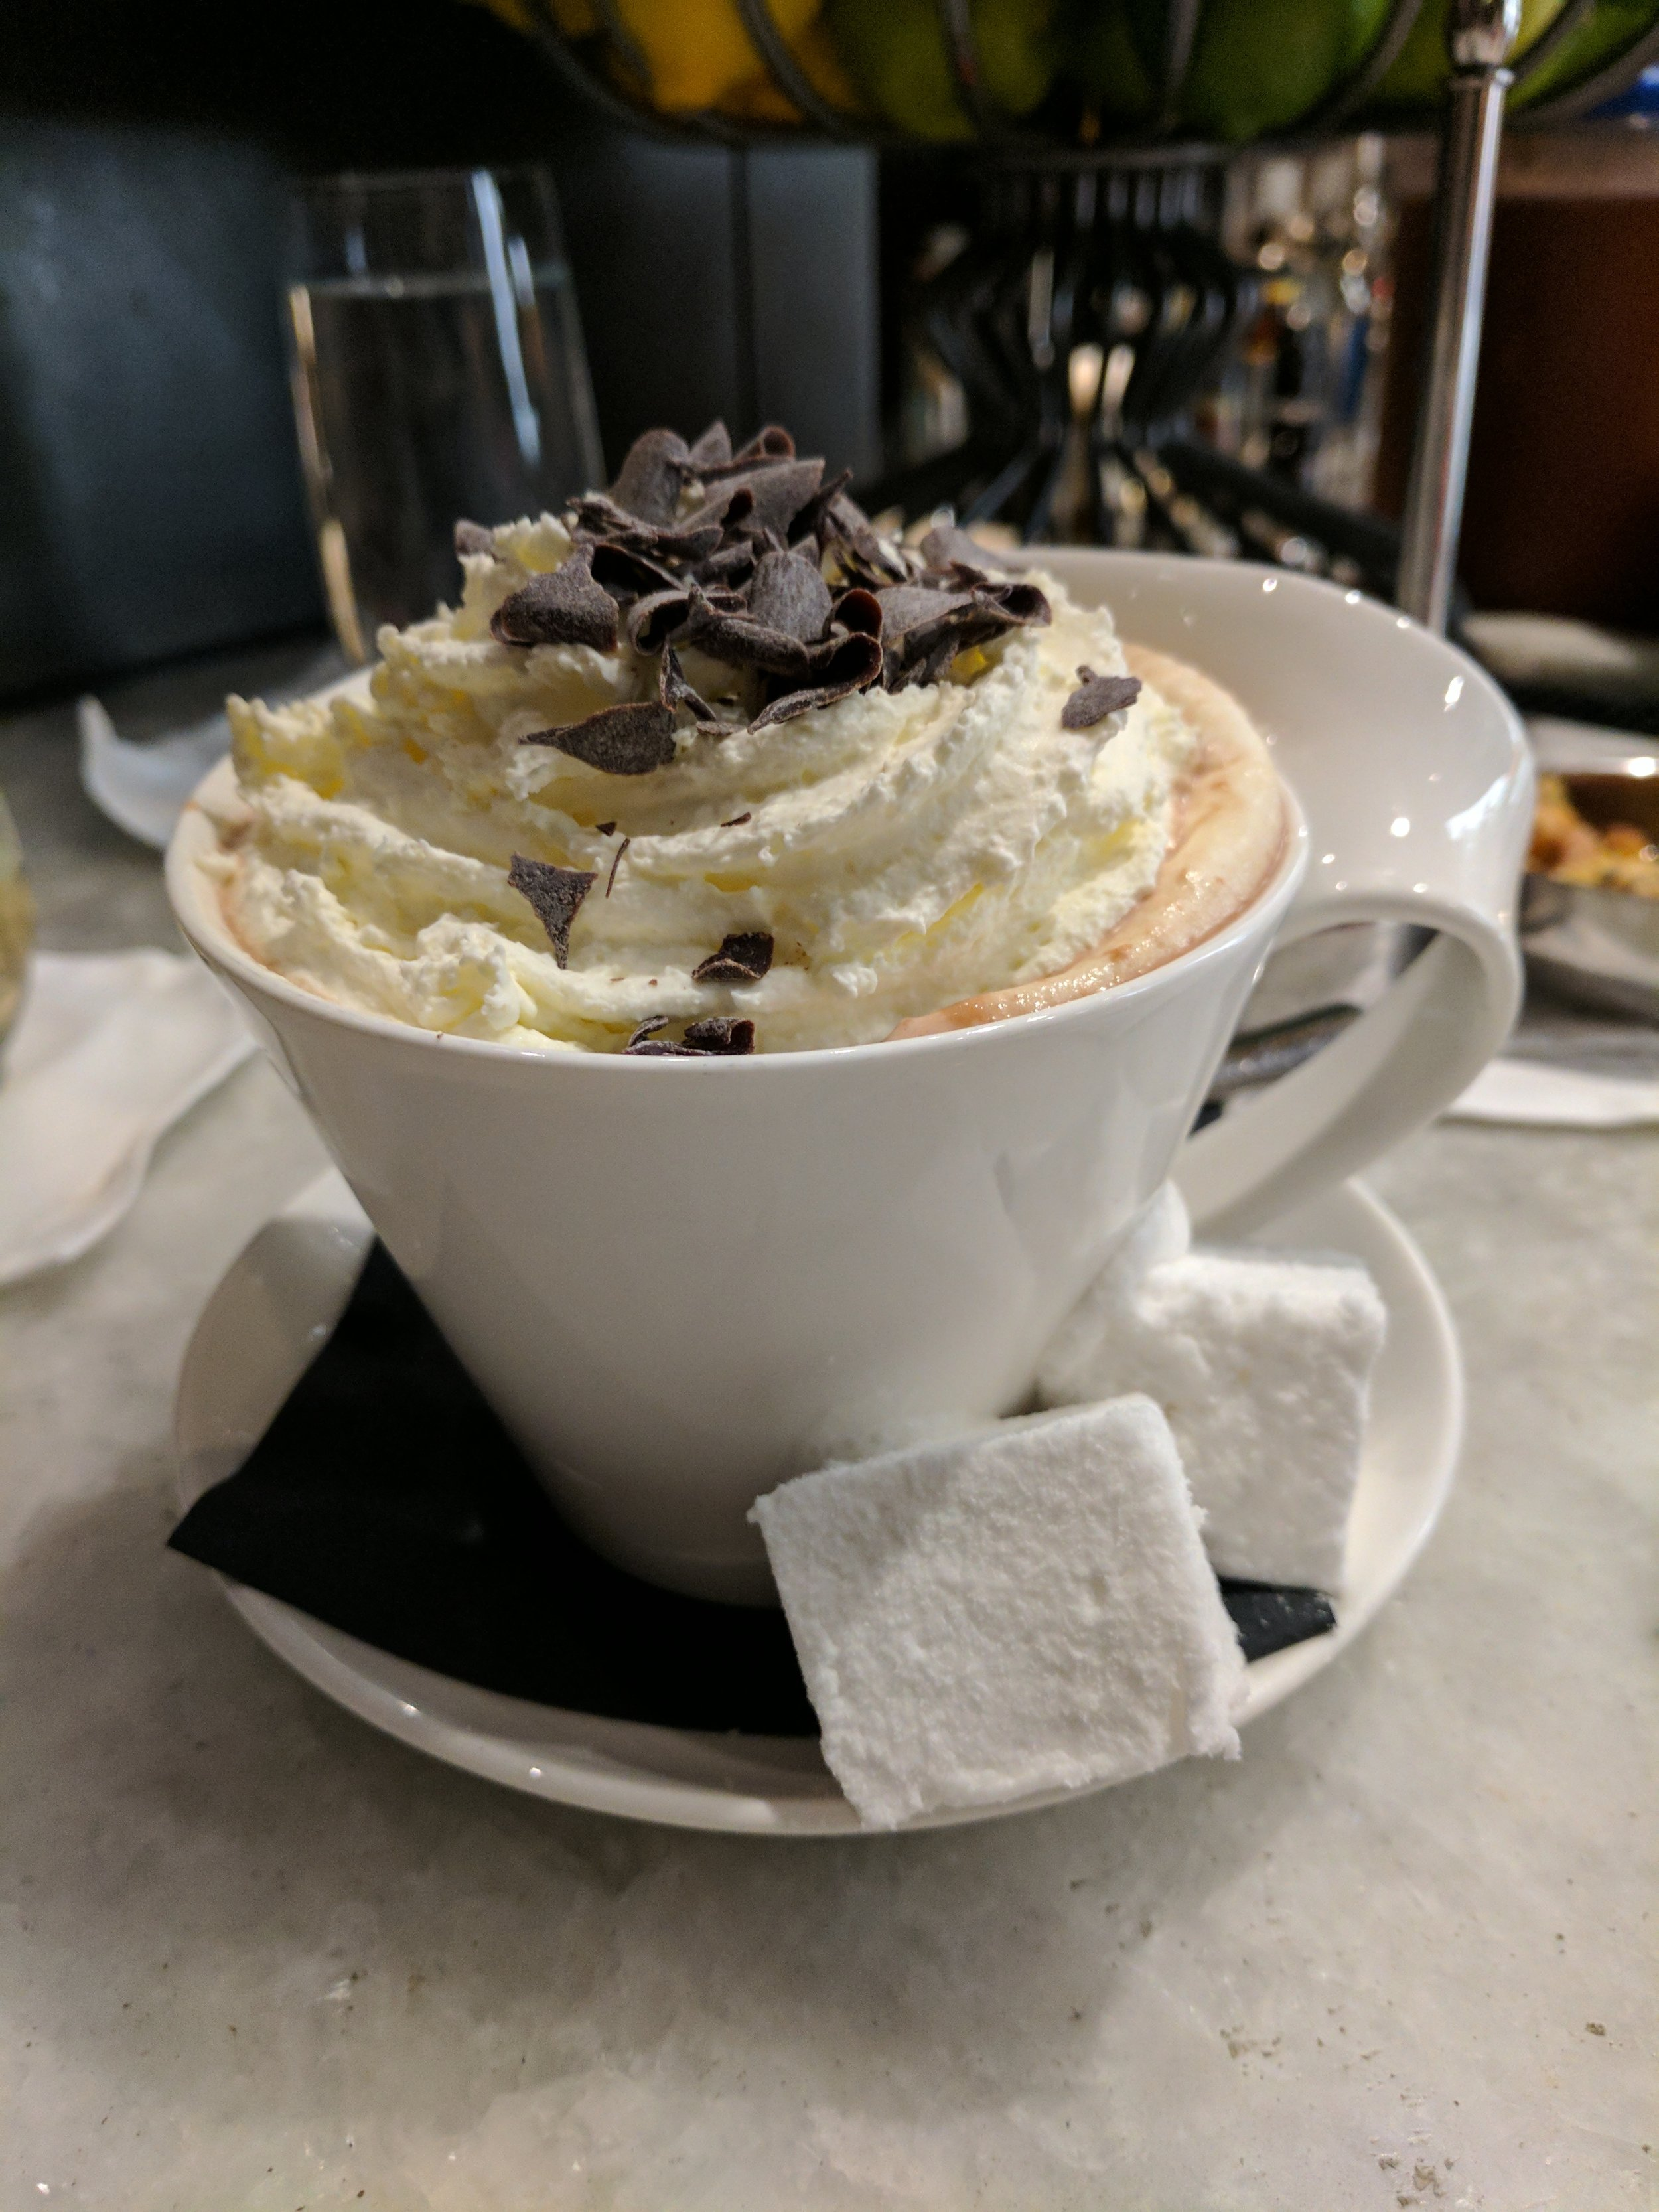 MORE HOT CHOCOLATE! Little Nell Après Ski with homemade marshmallows AND whipped cream